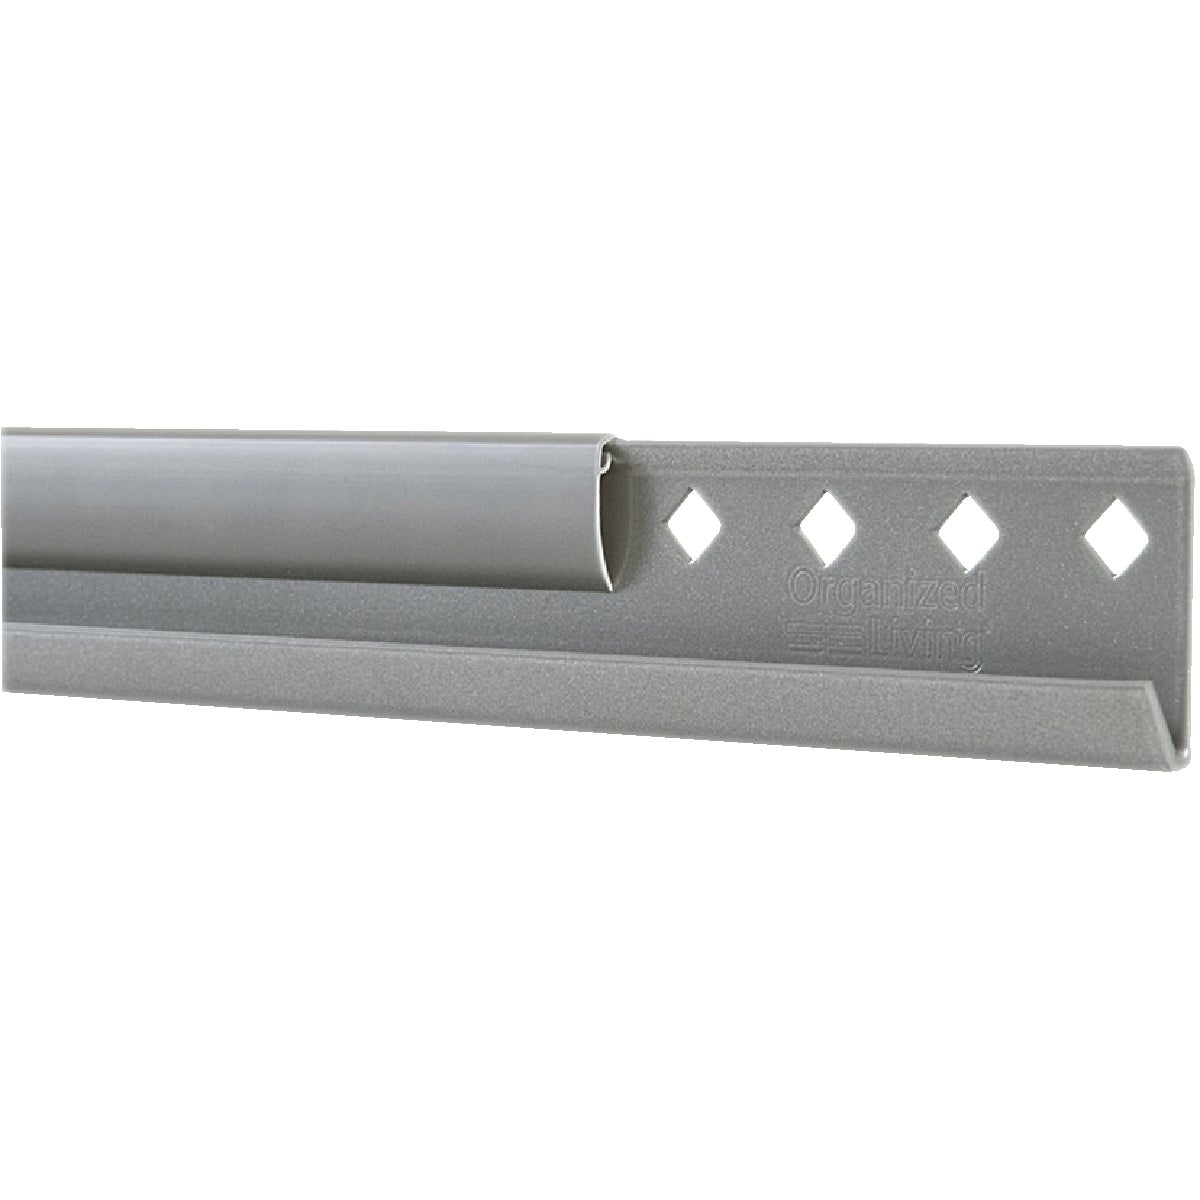 "80"" NICKEL HANGING RAIL - 7913448045 by Schulte Corp"